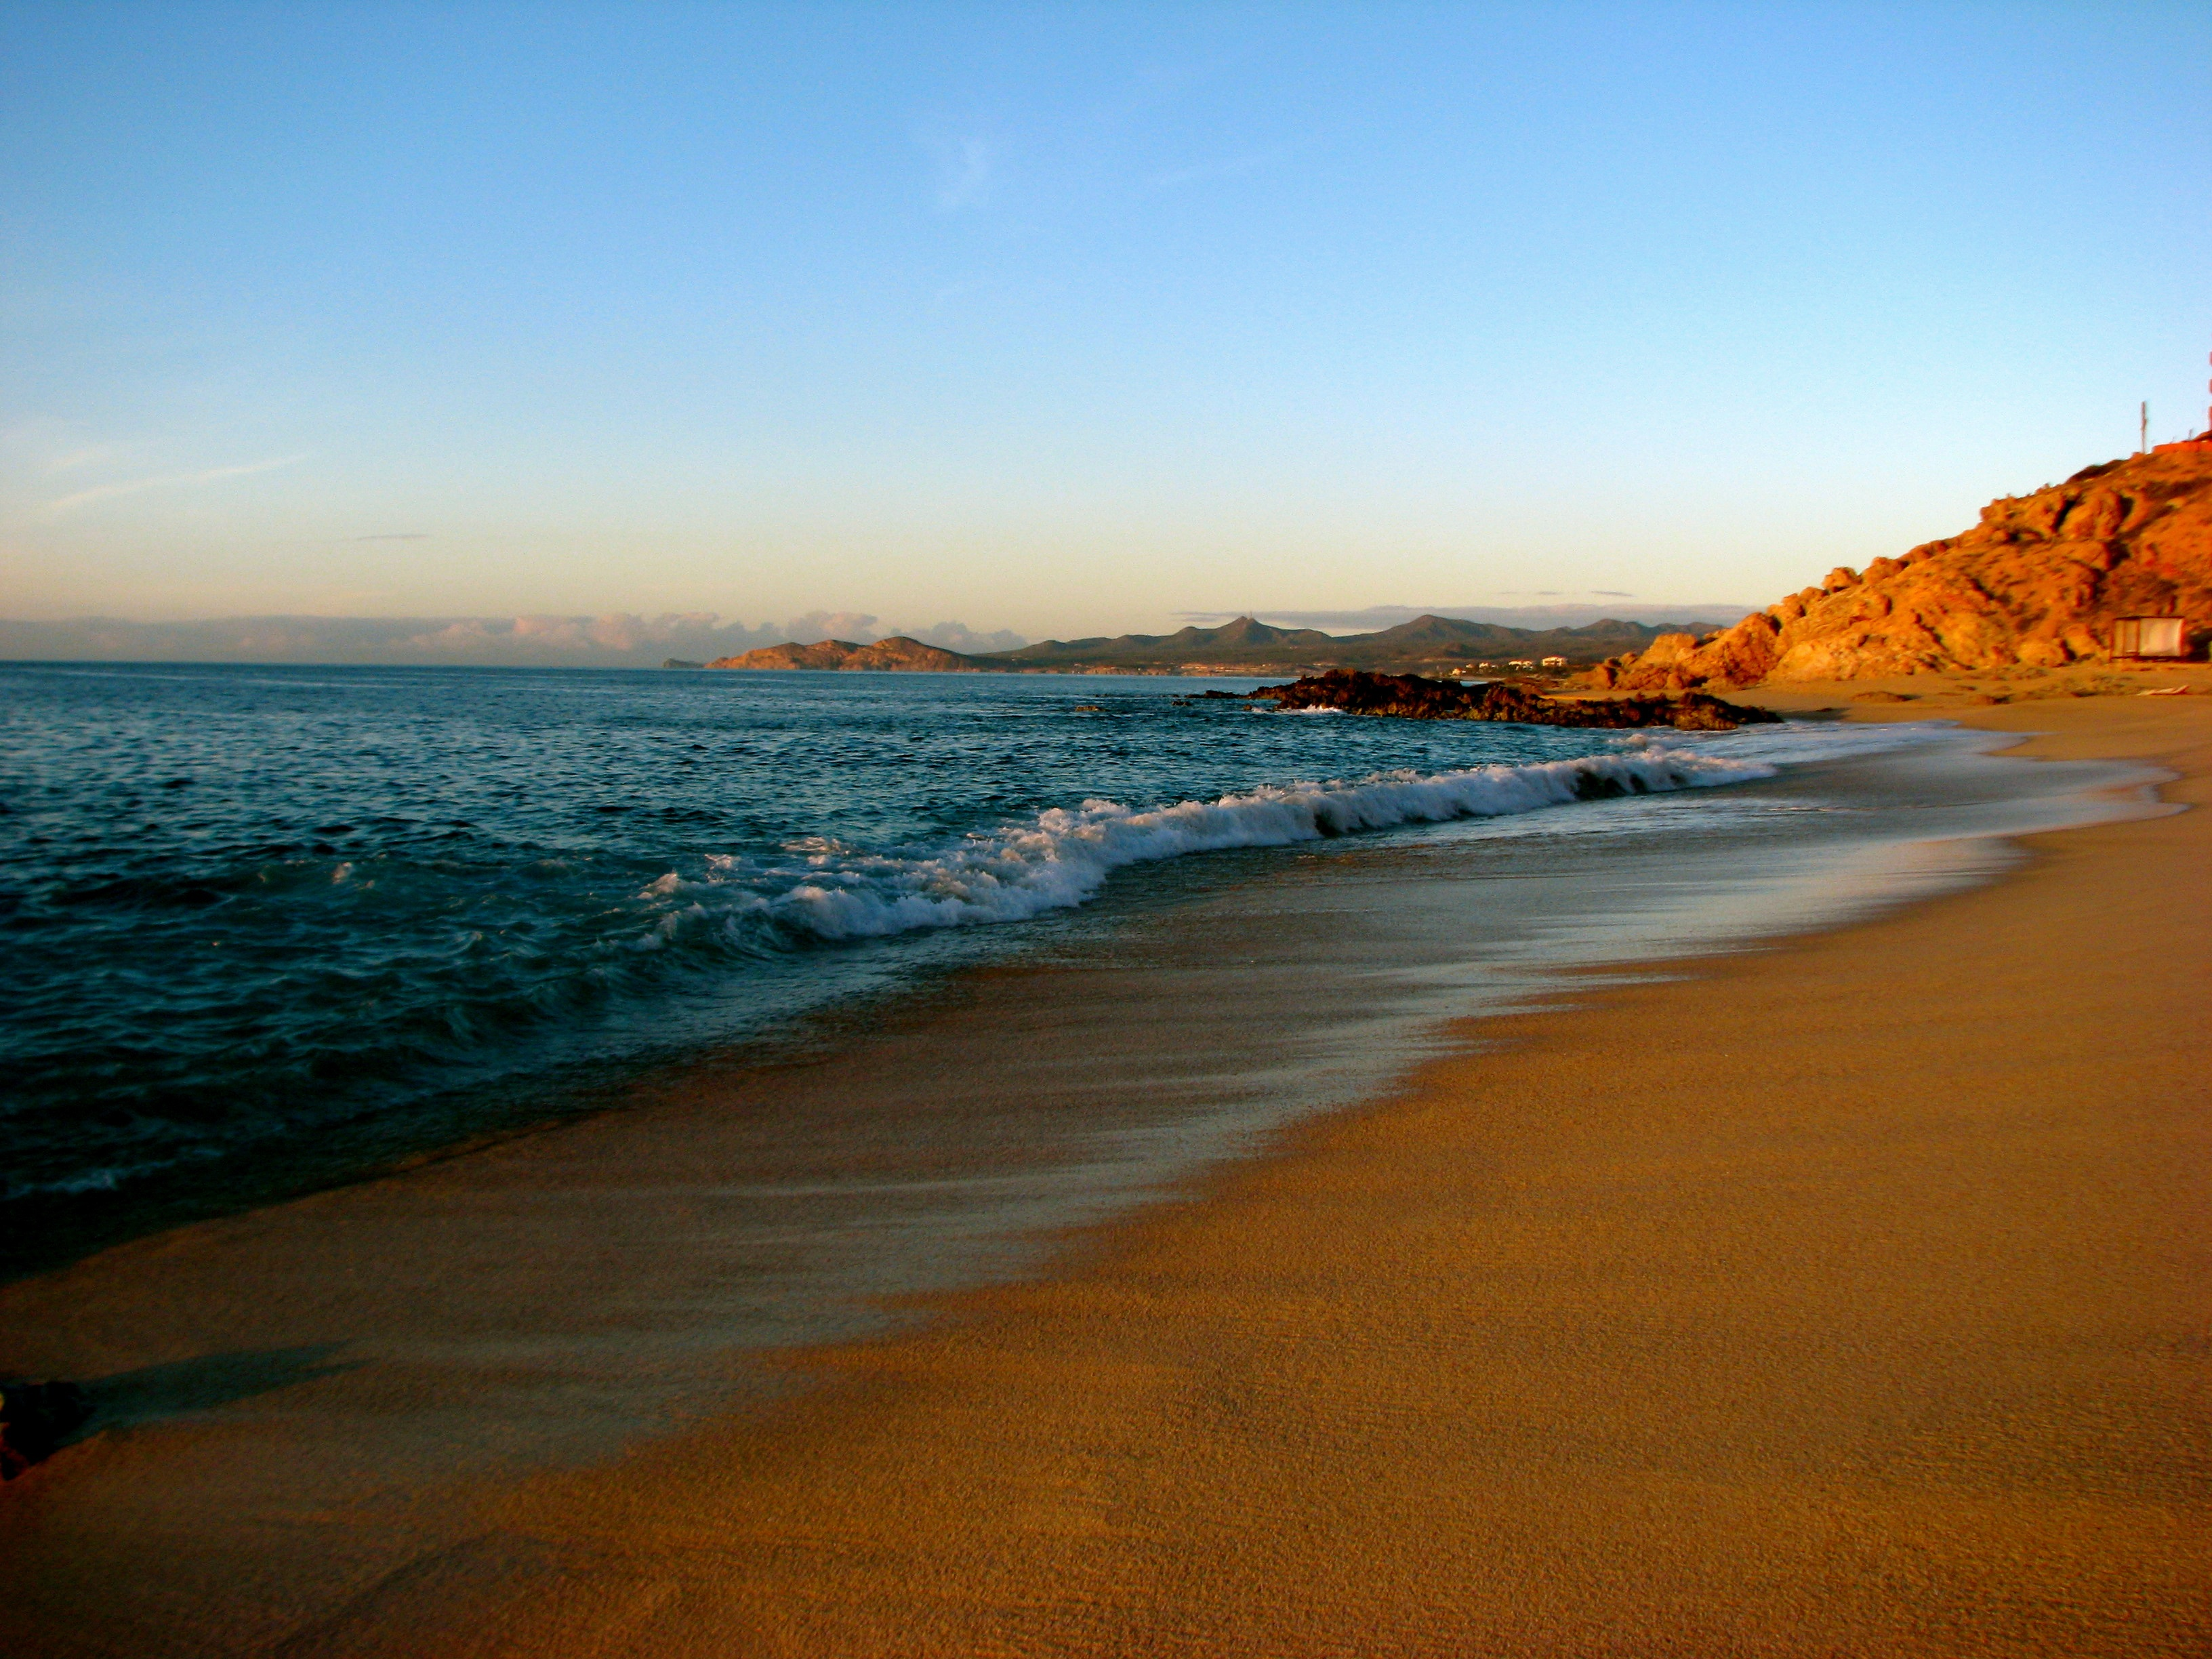 Beaches in Baja California Sur